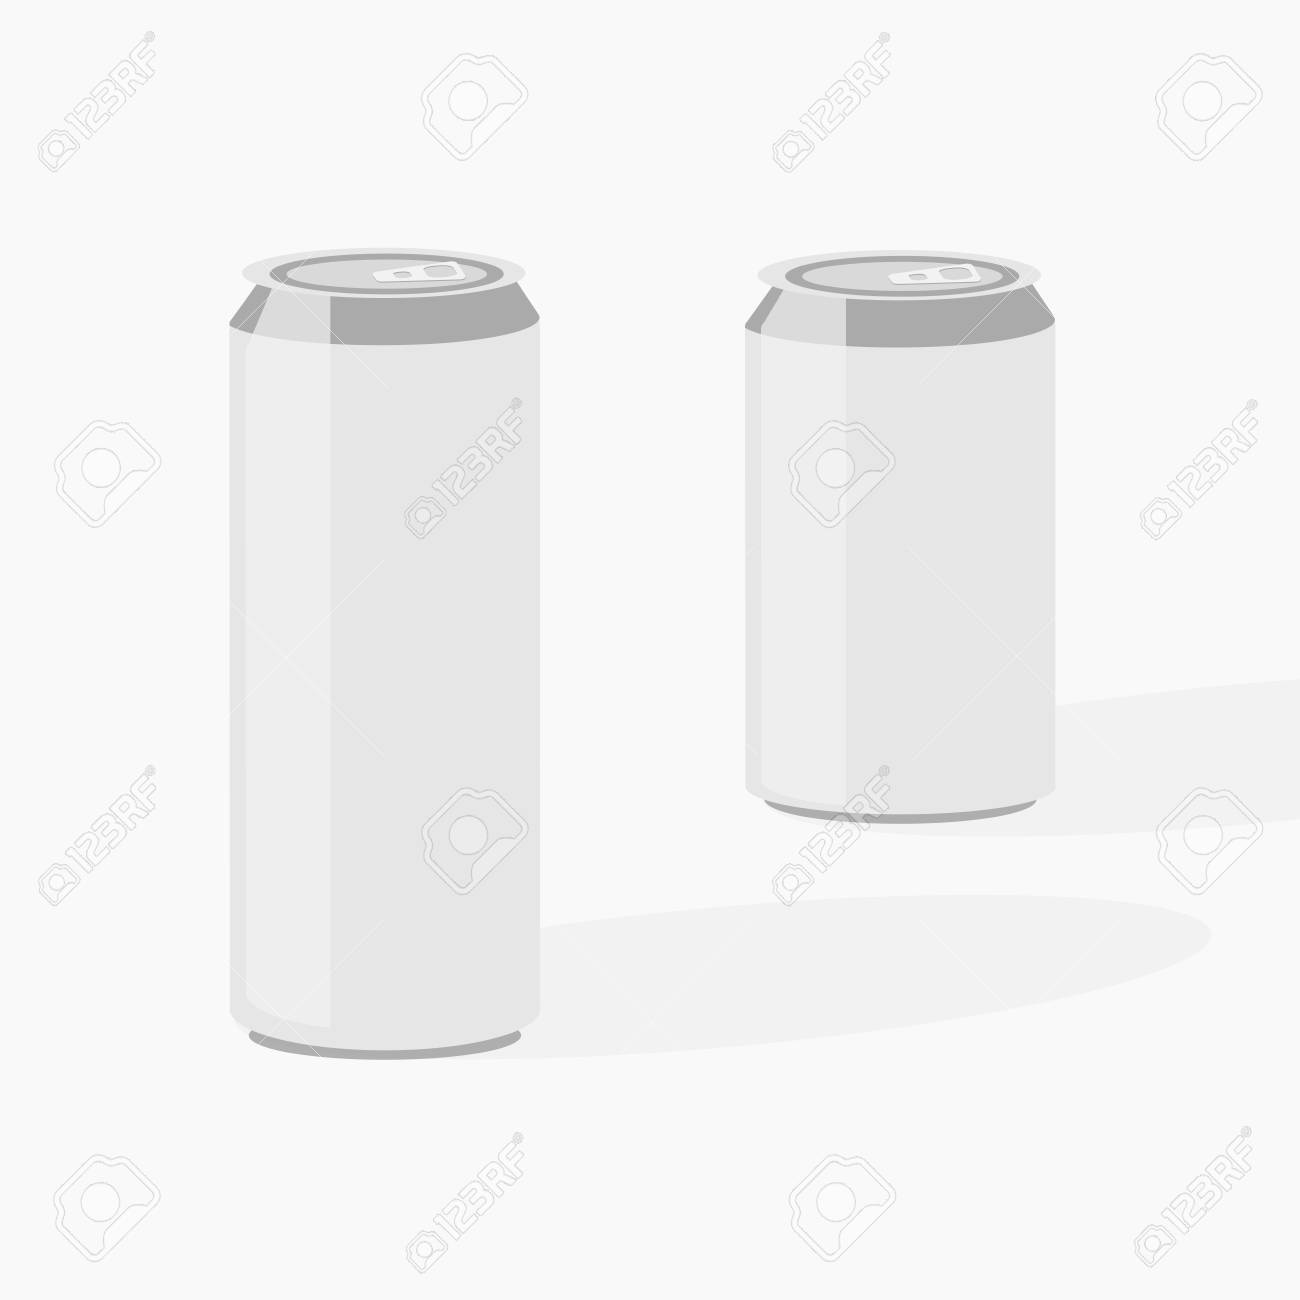 Beer can big size and small size ,illustration vector